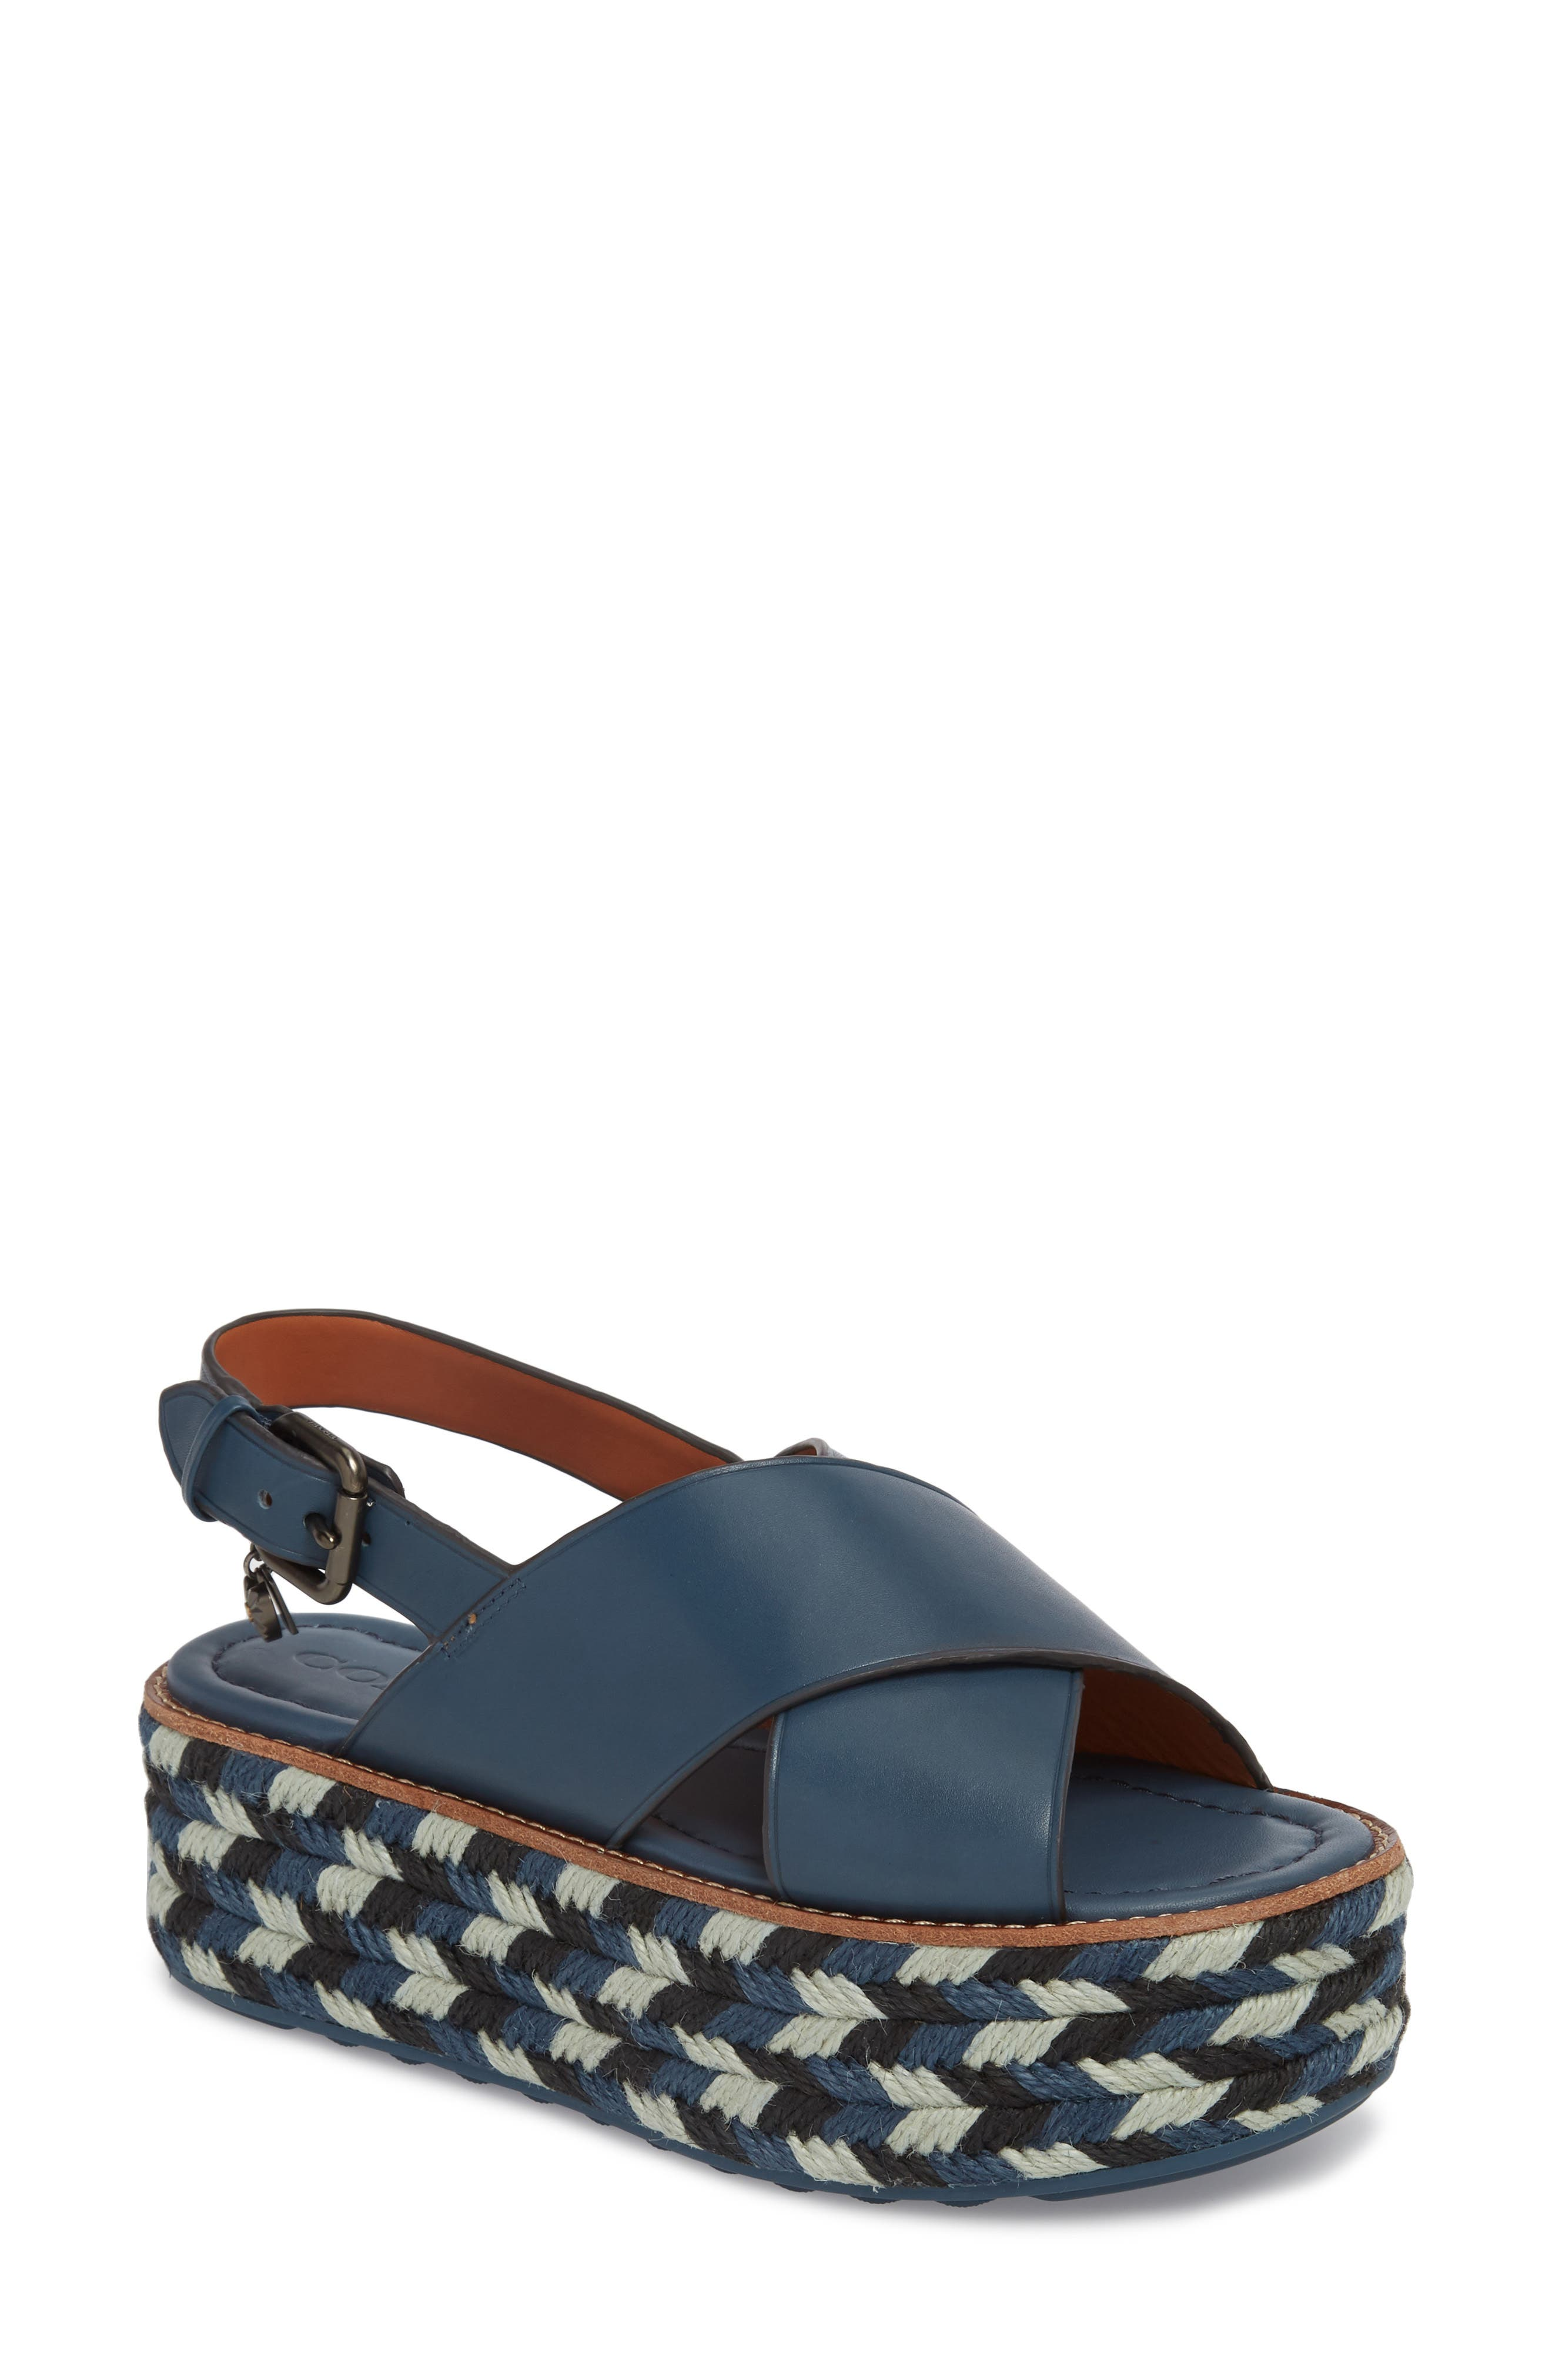 COACH Platform Wedge Sandal (Women)